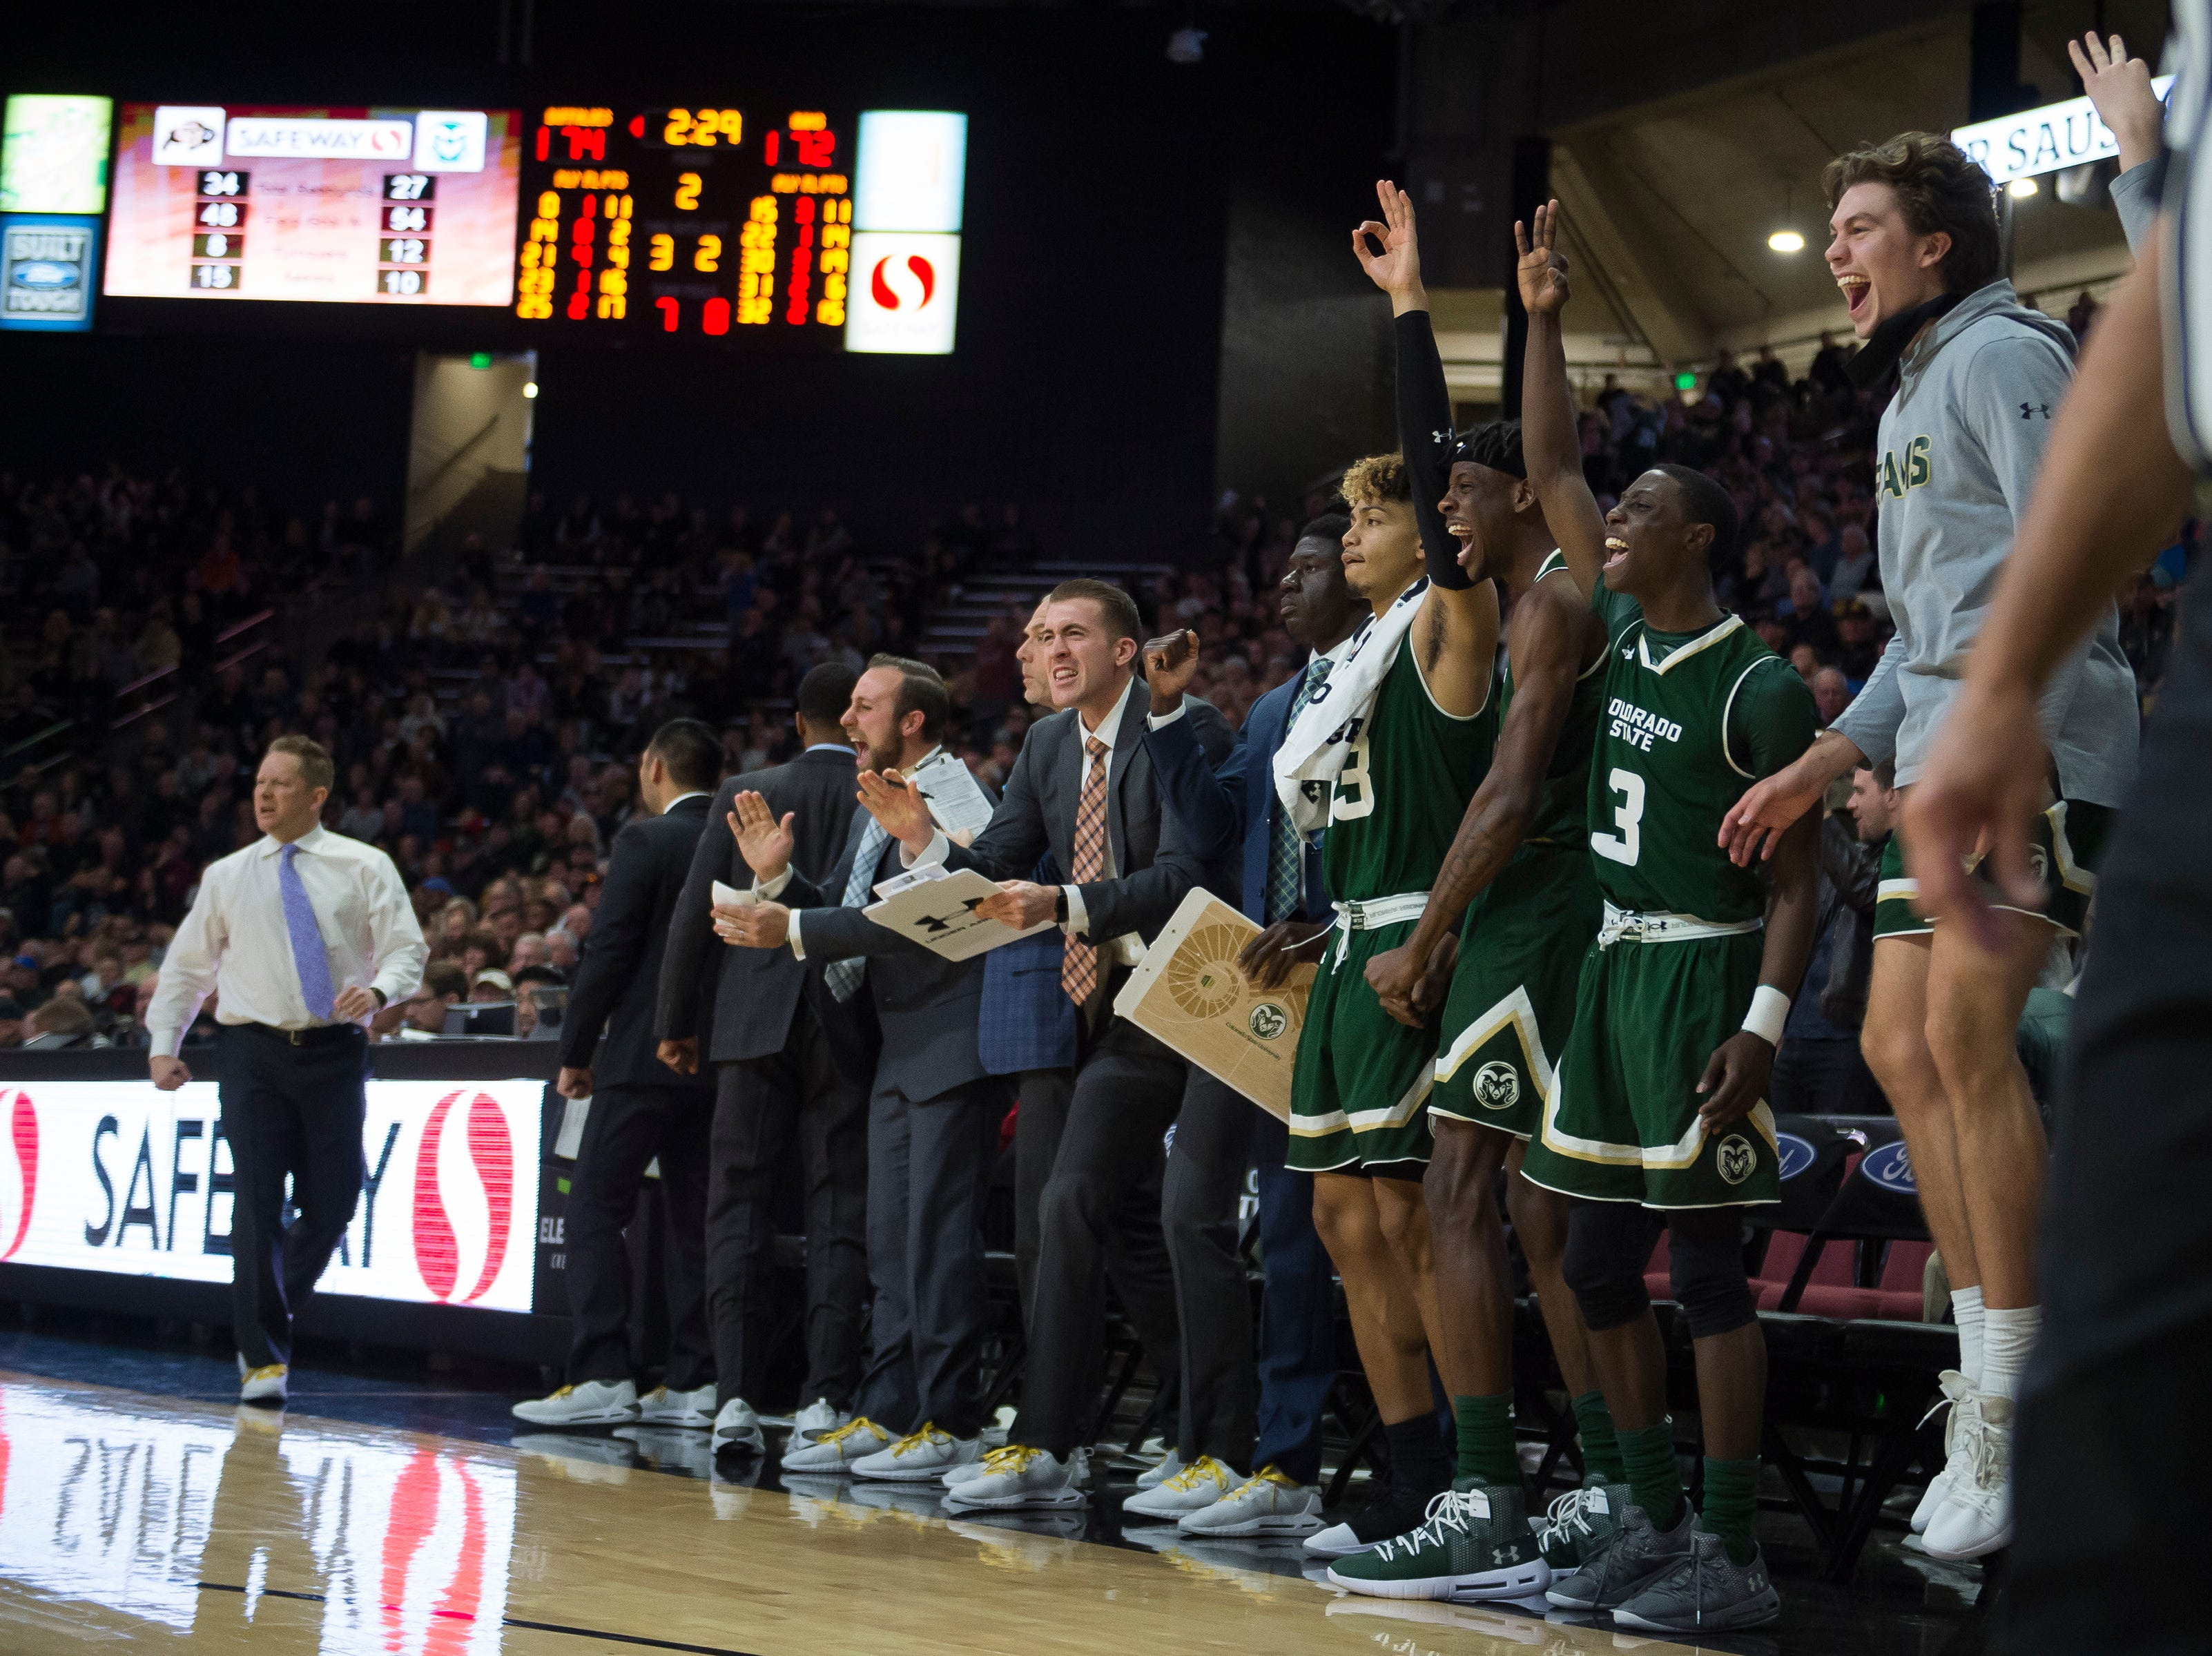 The Colorado State University bench reacts to play during a game against the University of Colorado on Saturday, Dec. 1, 2018, at the CU Event Center in Boulder, Colo.